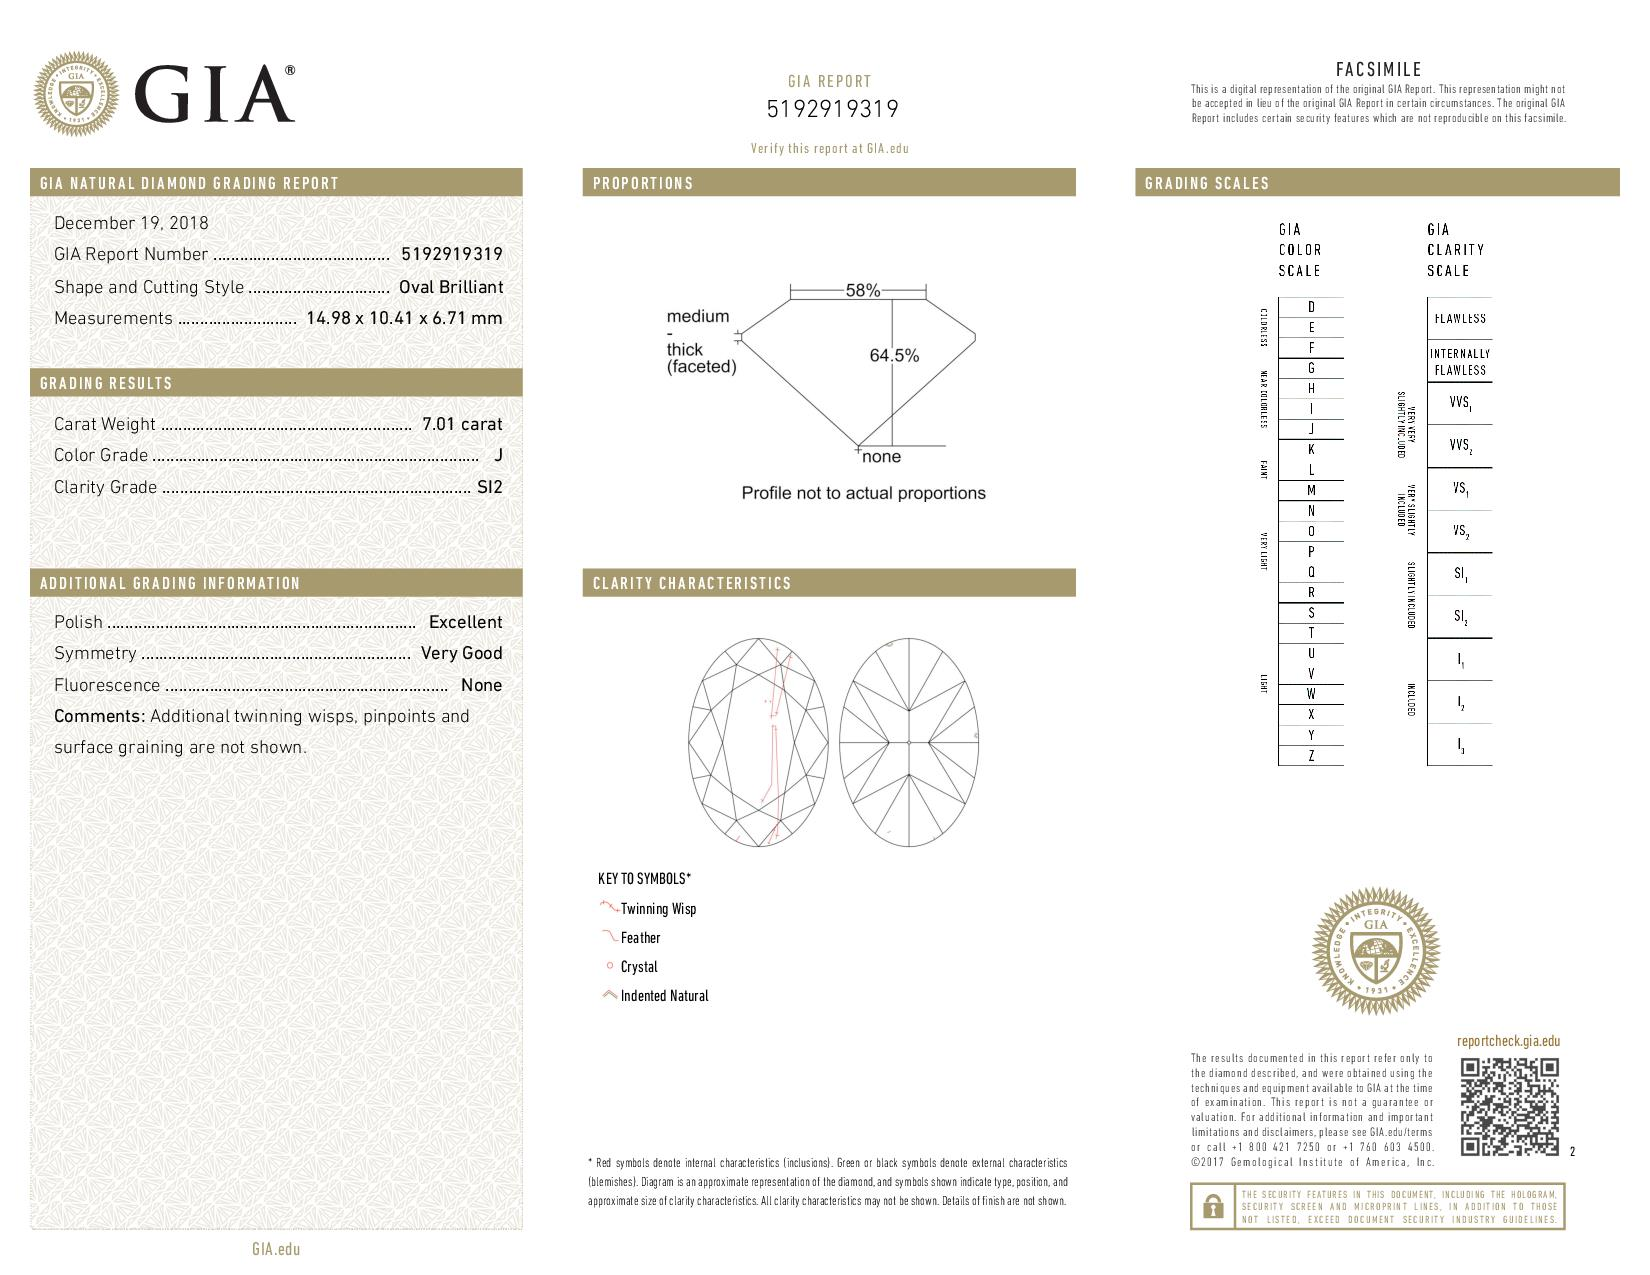 This is a 7.01 carat oval shape, J color, SI2 clarity natural diamond accompanied by a GIA grading report.